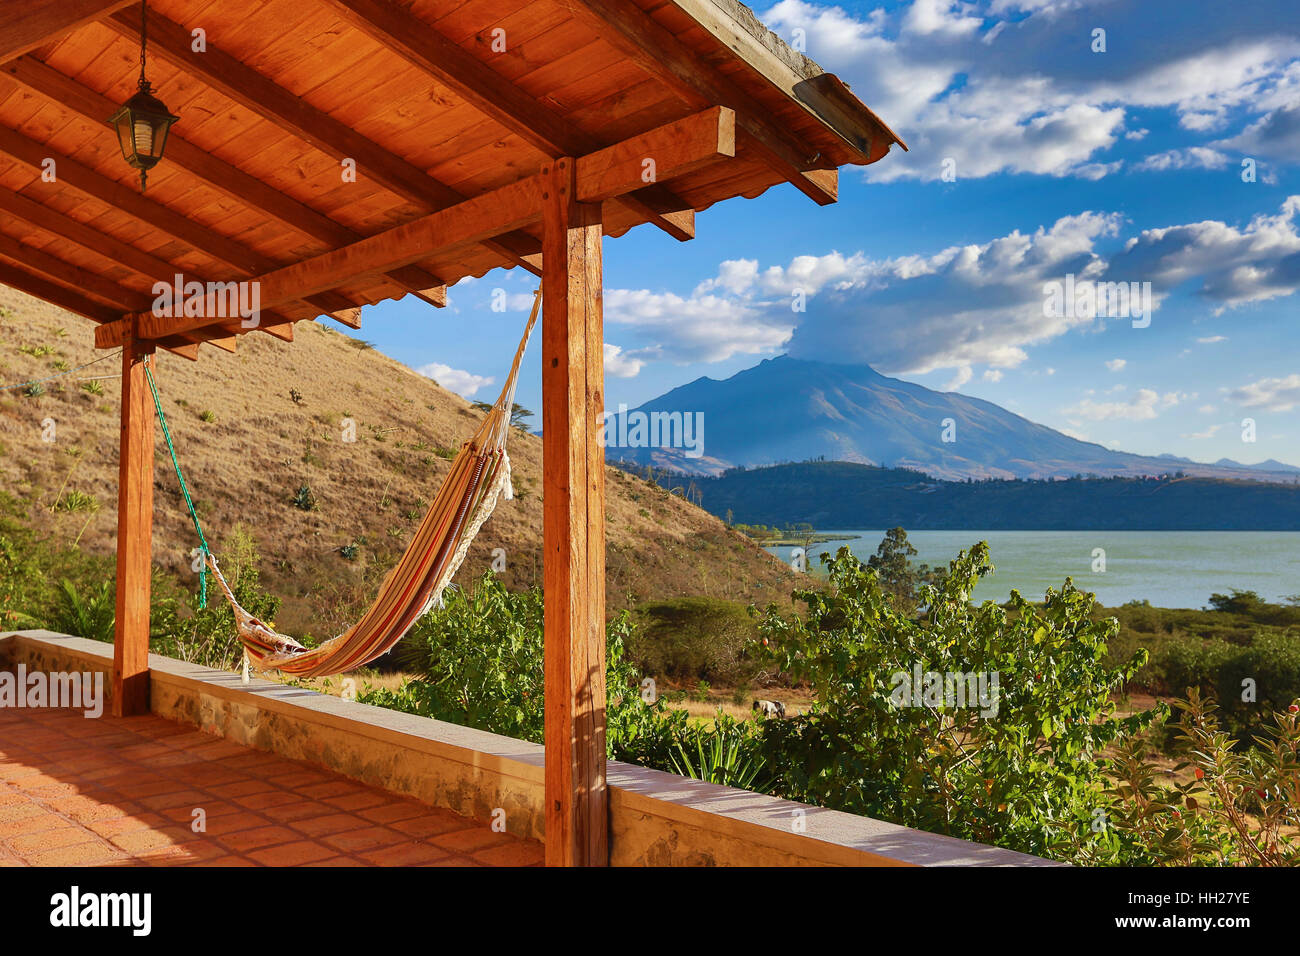 hammock on a patio with volcano in the background in Ibarra, Ecuador - Stock Image